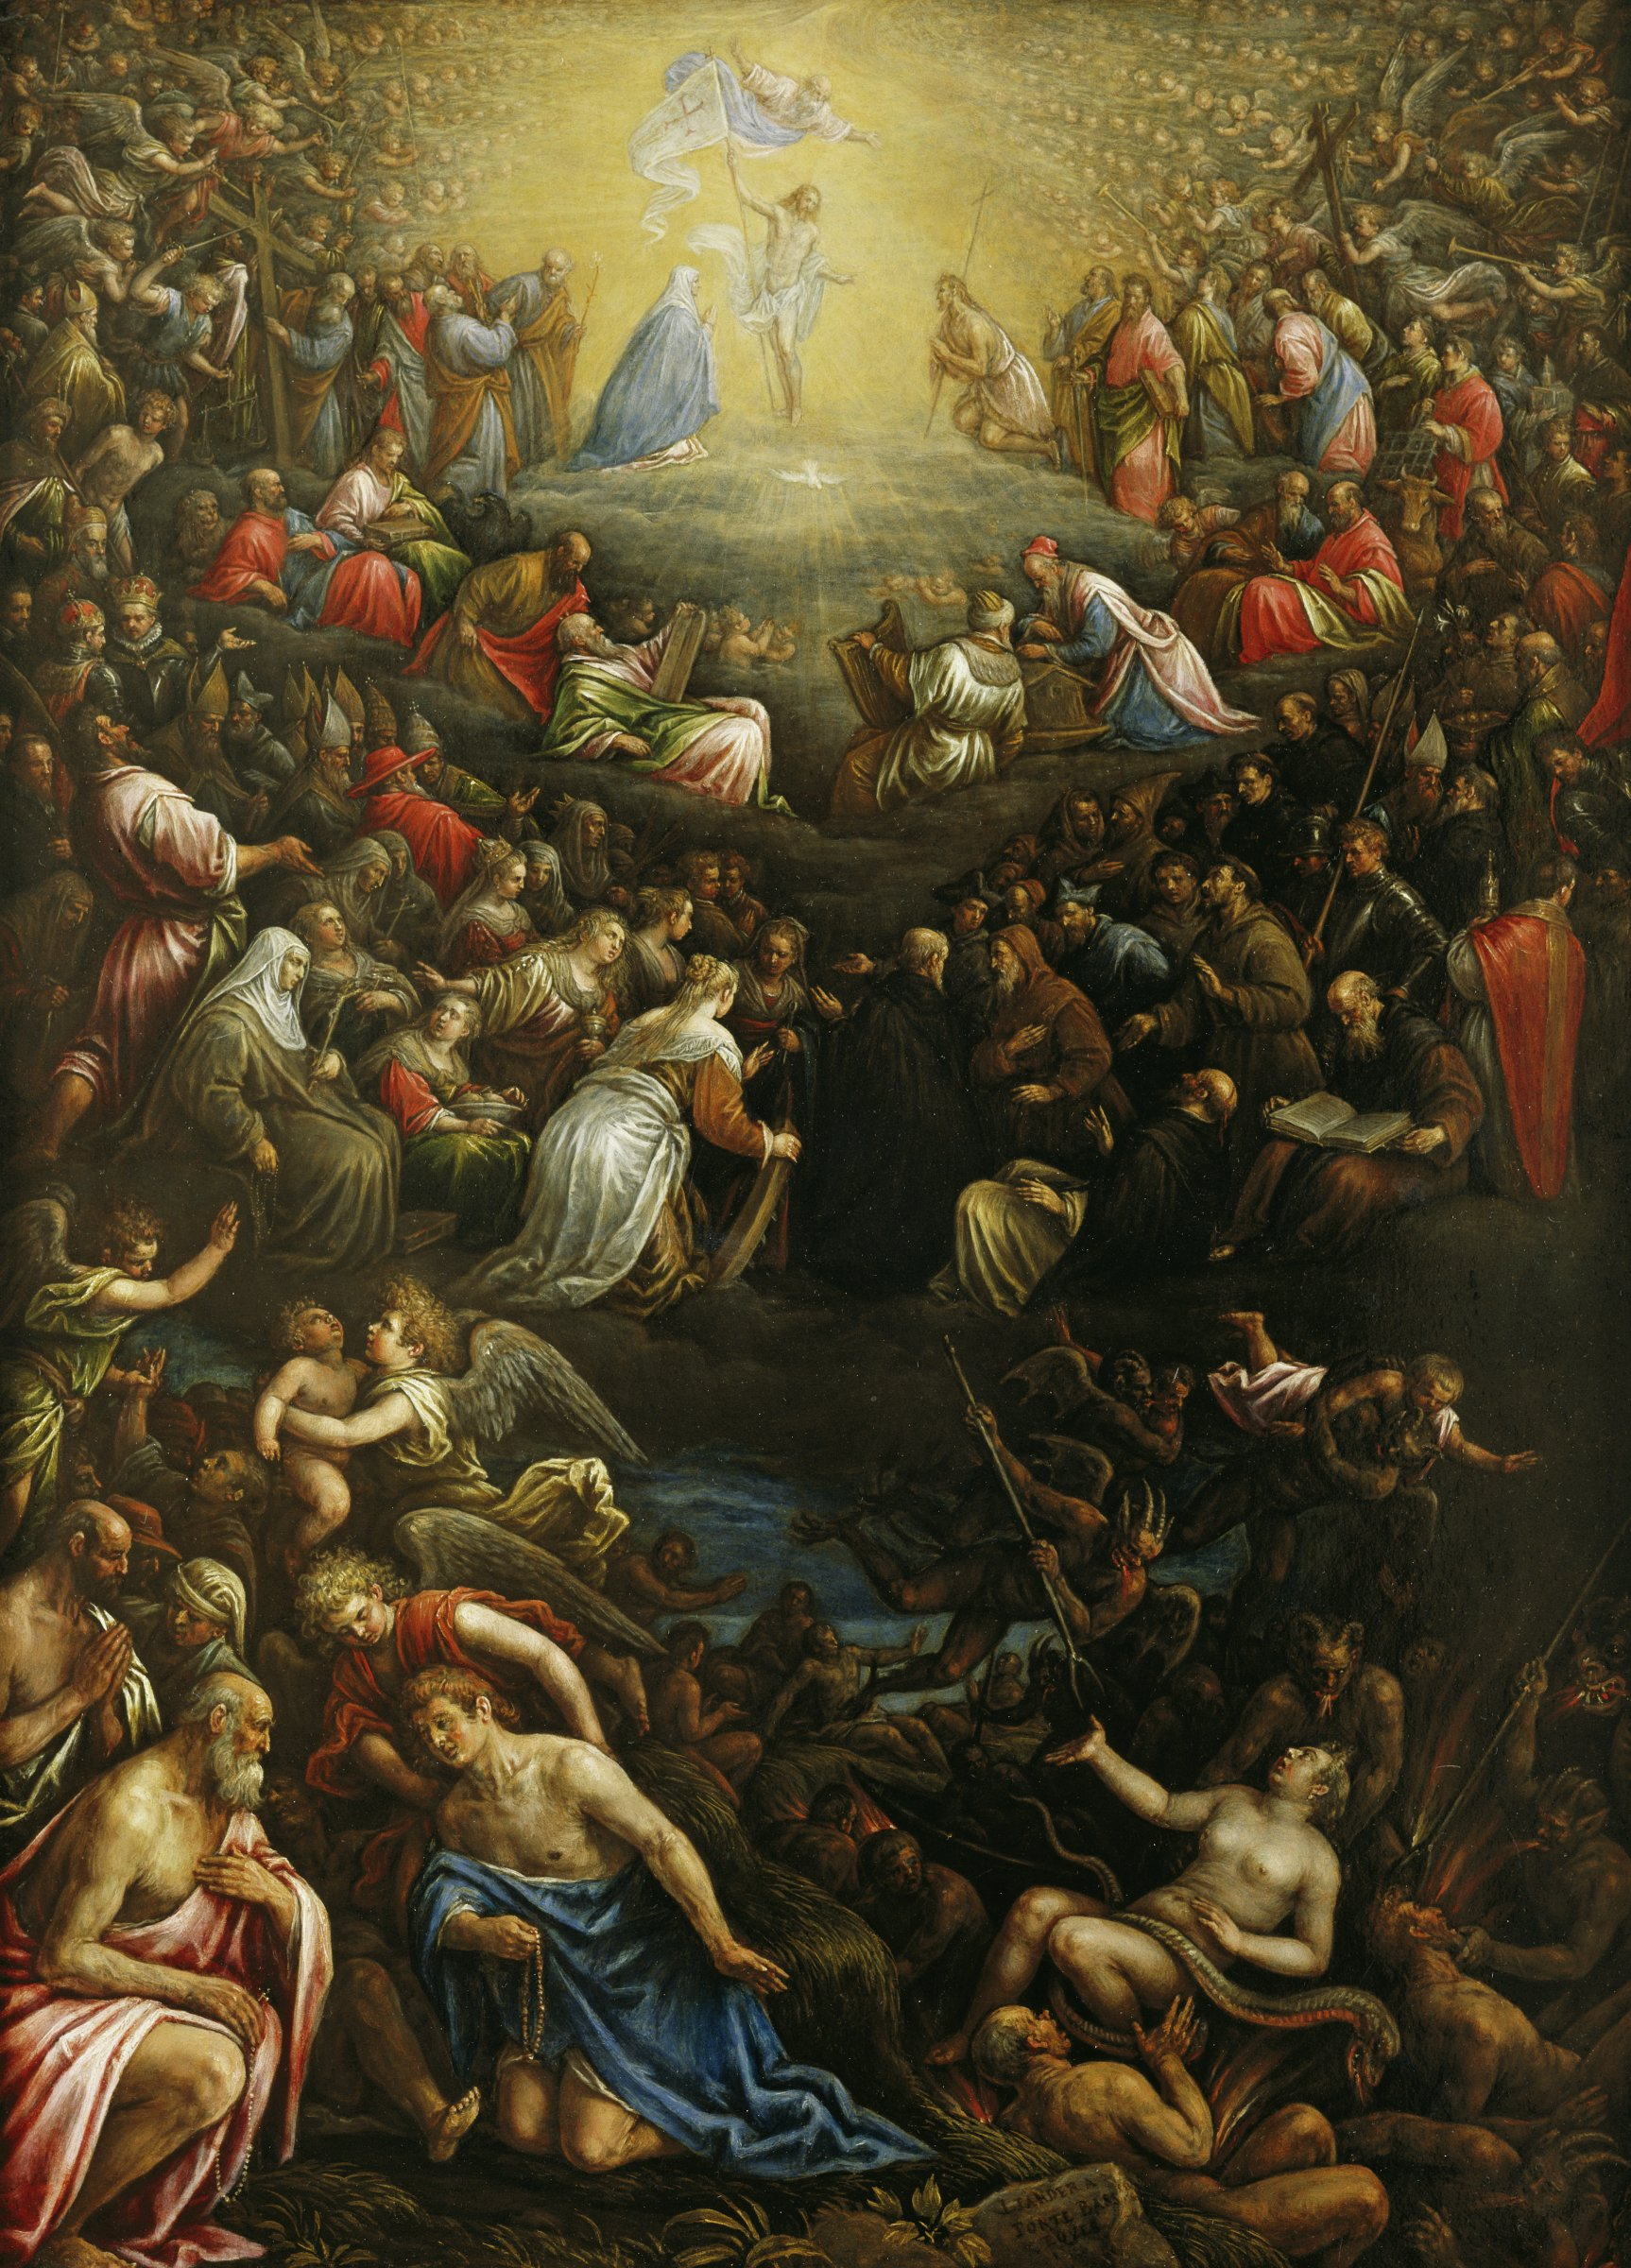 In this painting, Jesus has returned to earth and divided a sea of humanity into the righteous on the left and the damned, who are being tortured by devils, on the right.